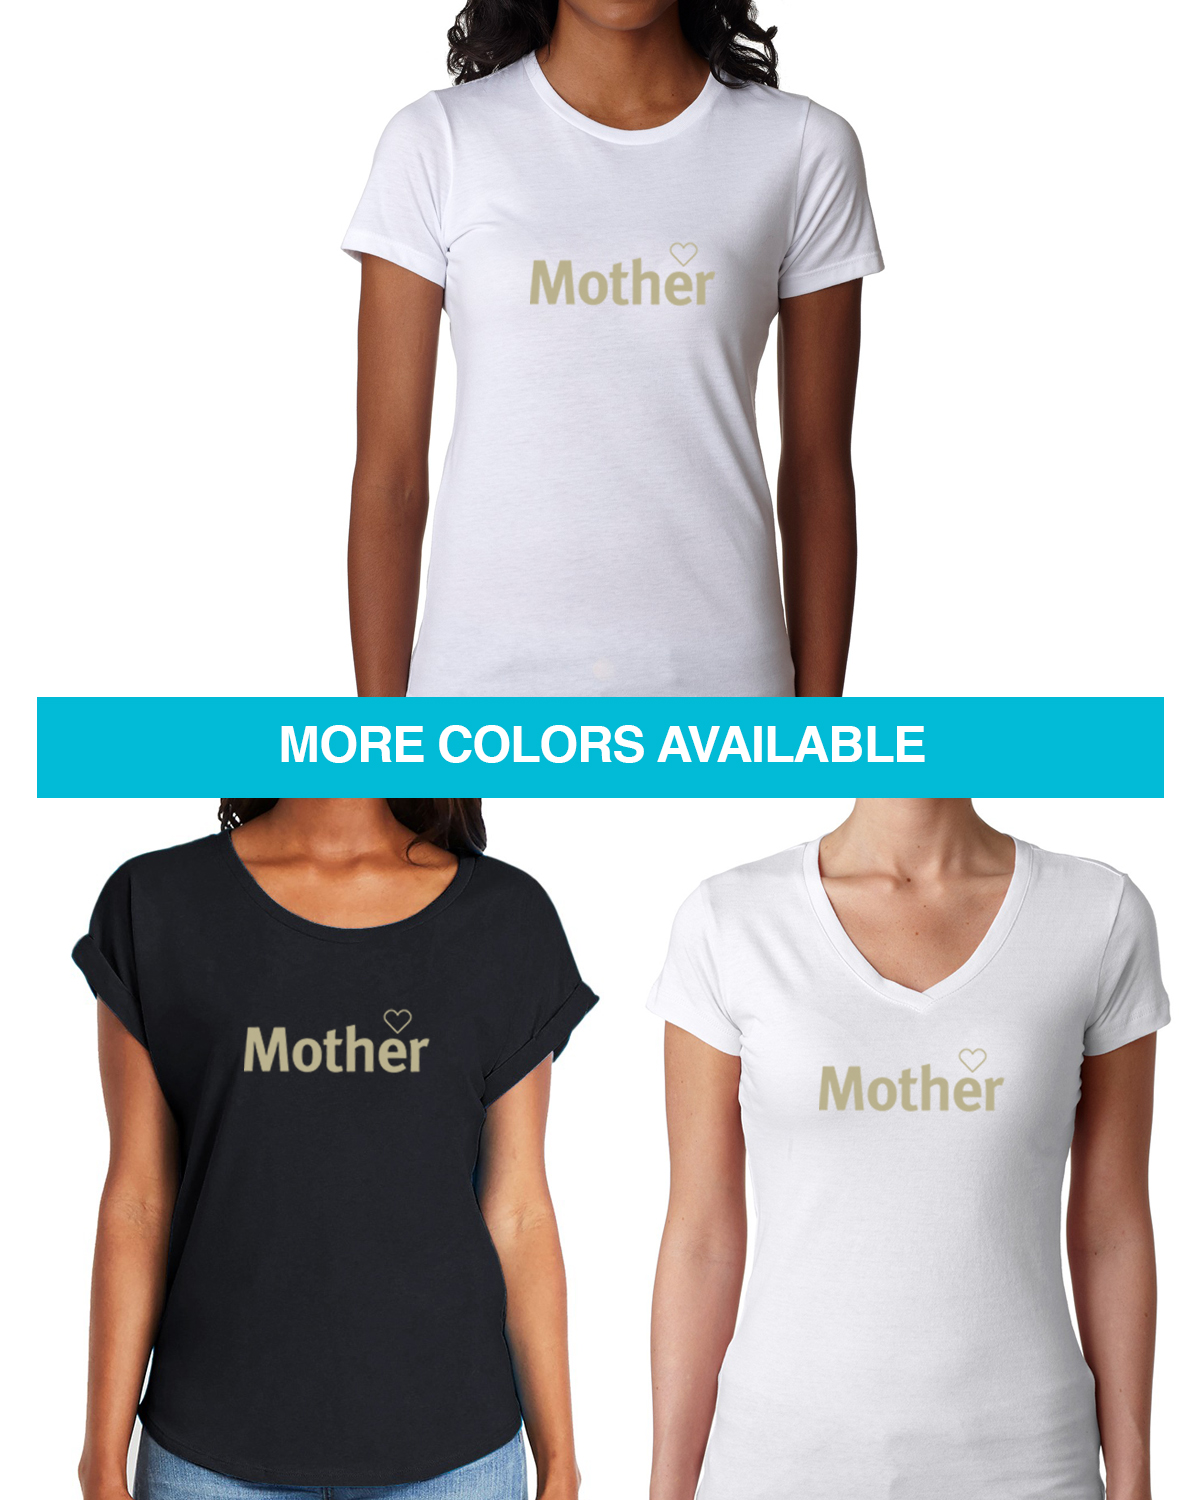 Women's Shirt sleeve mother or motherhood t-shirt